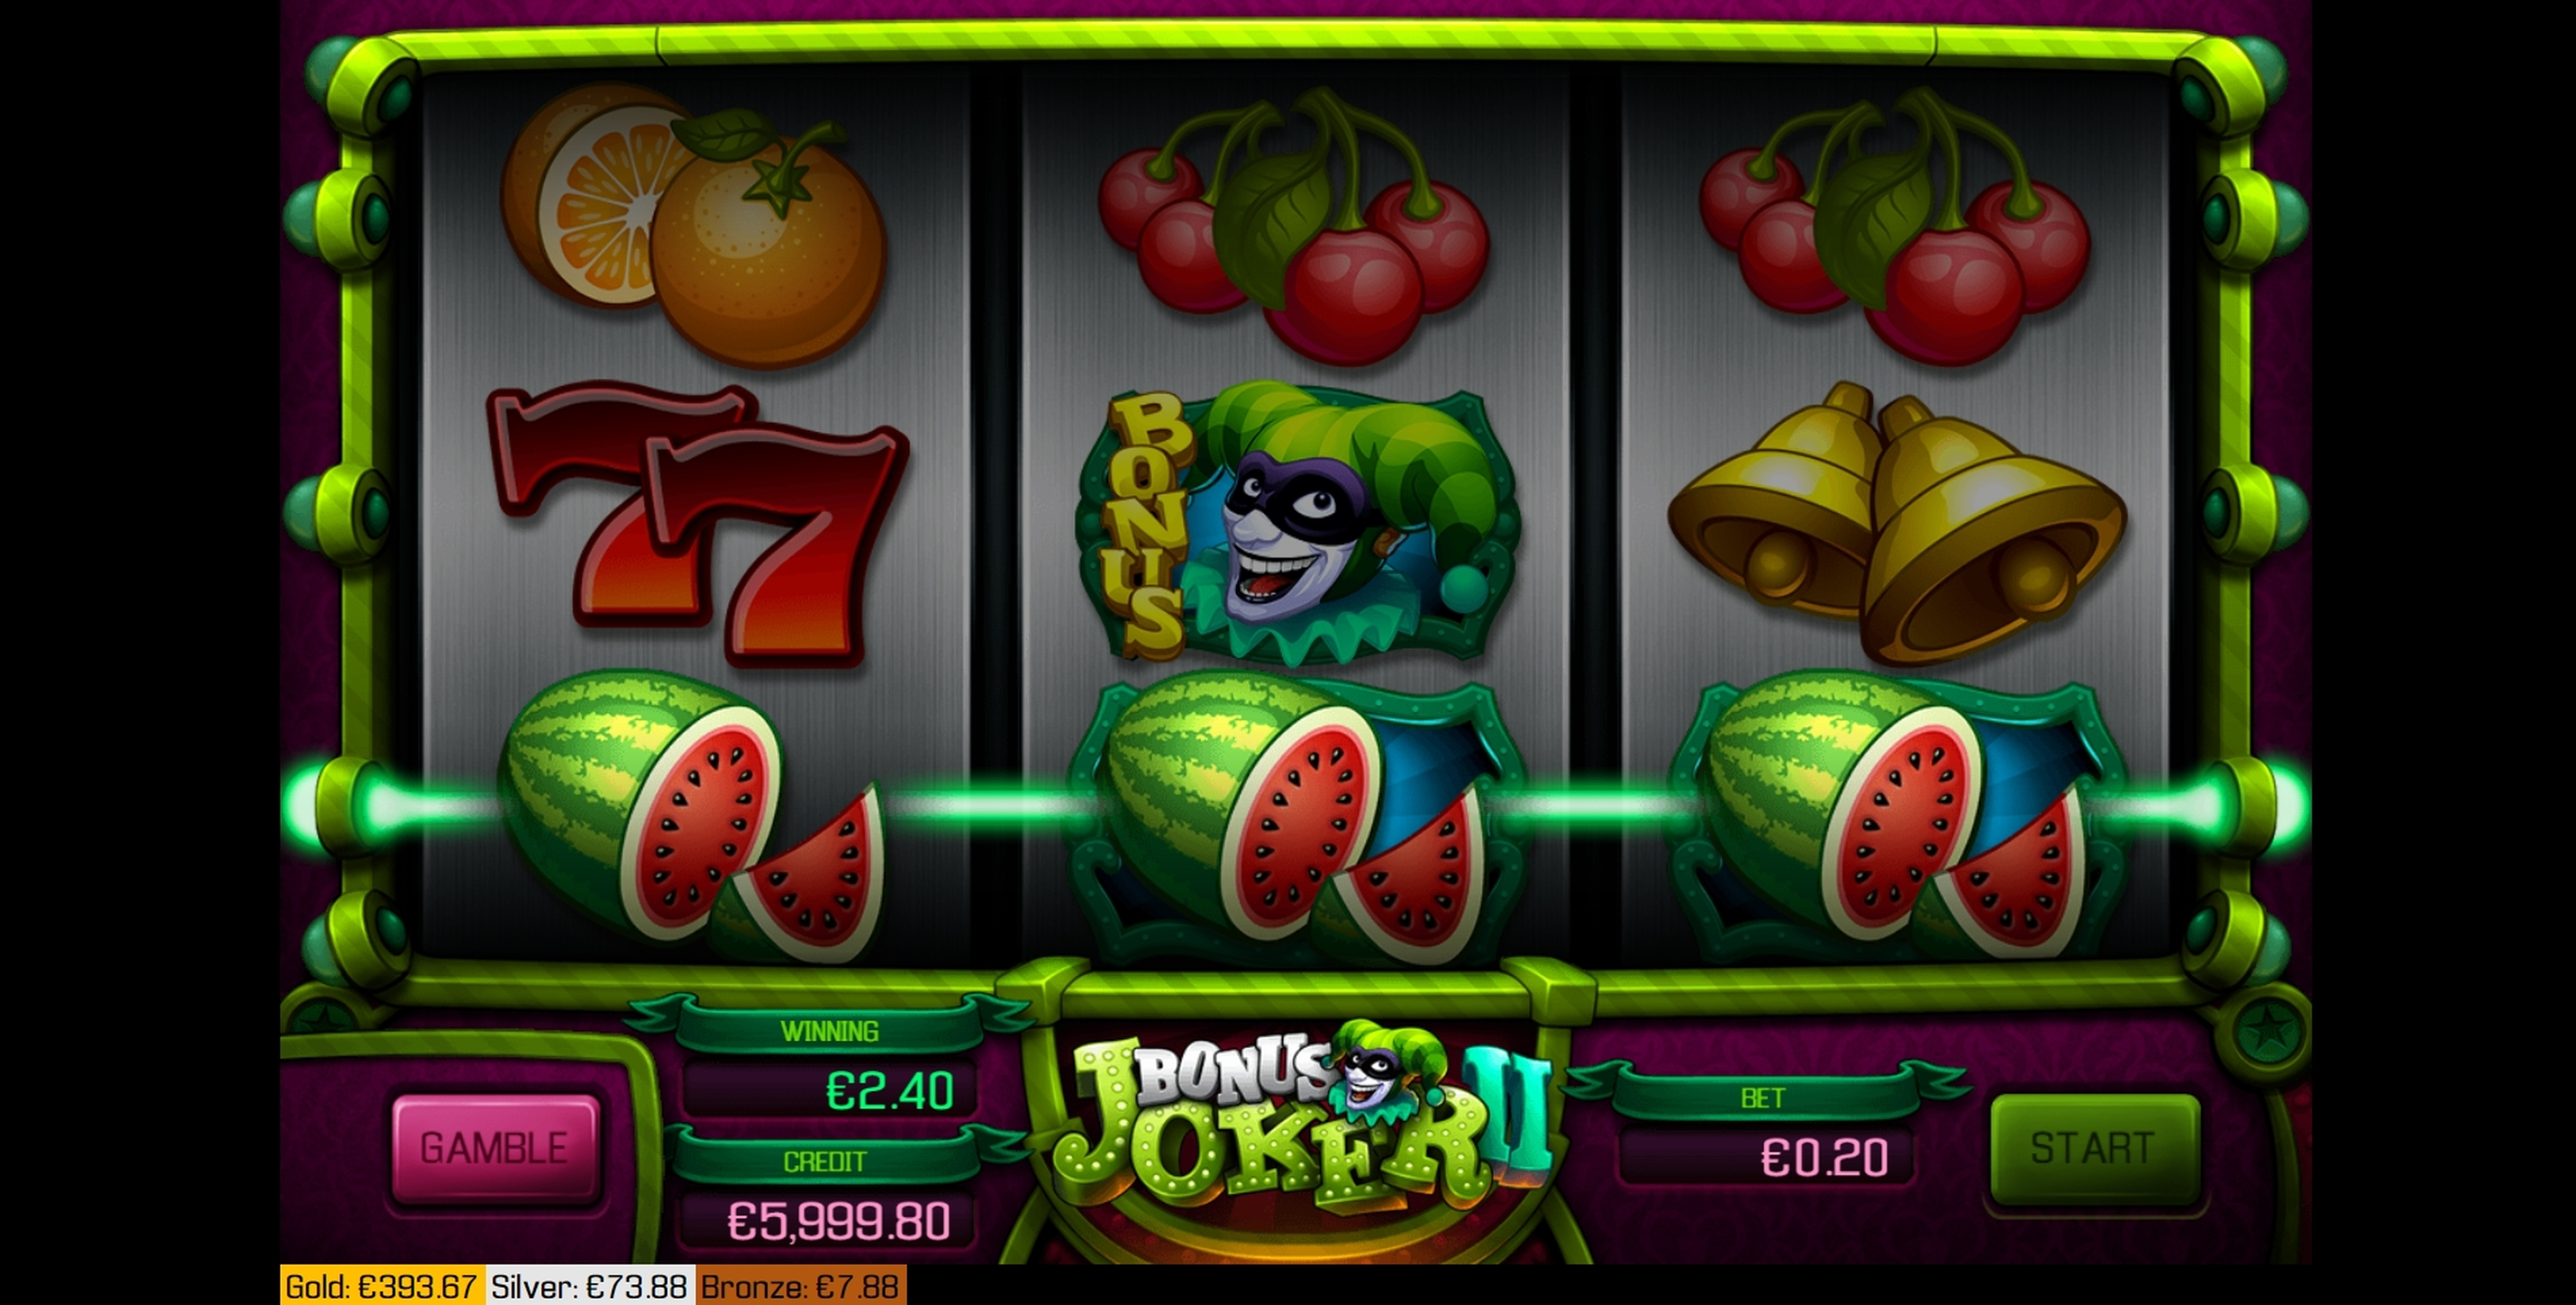 Win Money in Bonus Joker 2 Free Slot Game by Apollo Games